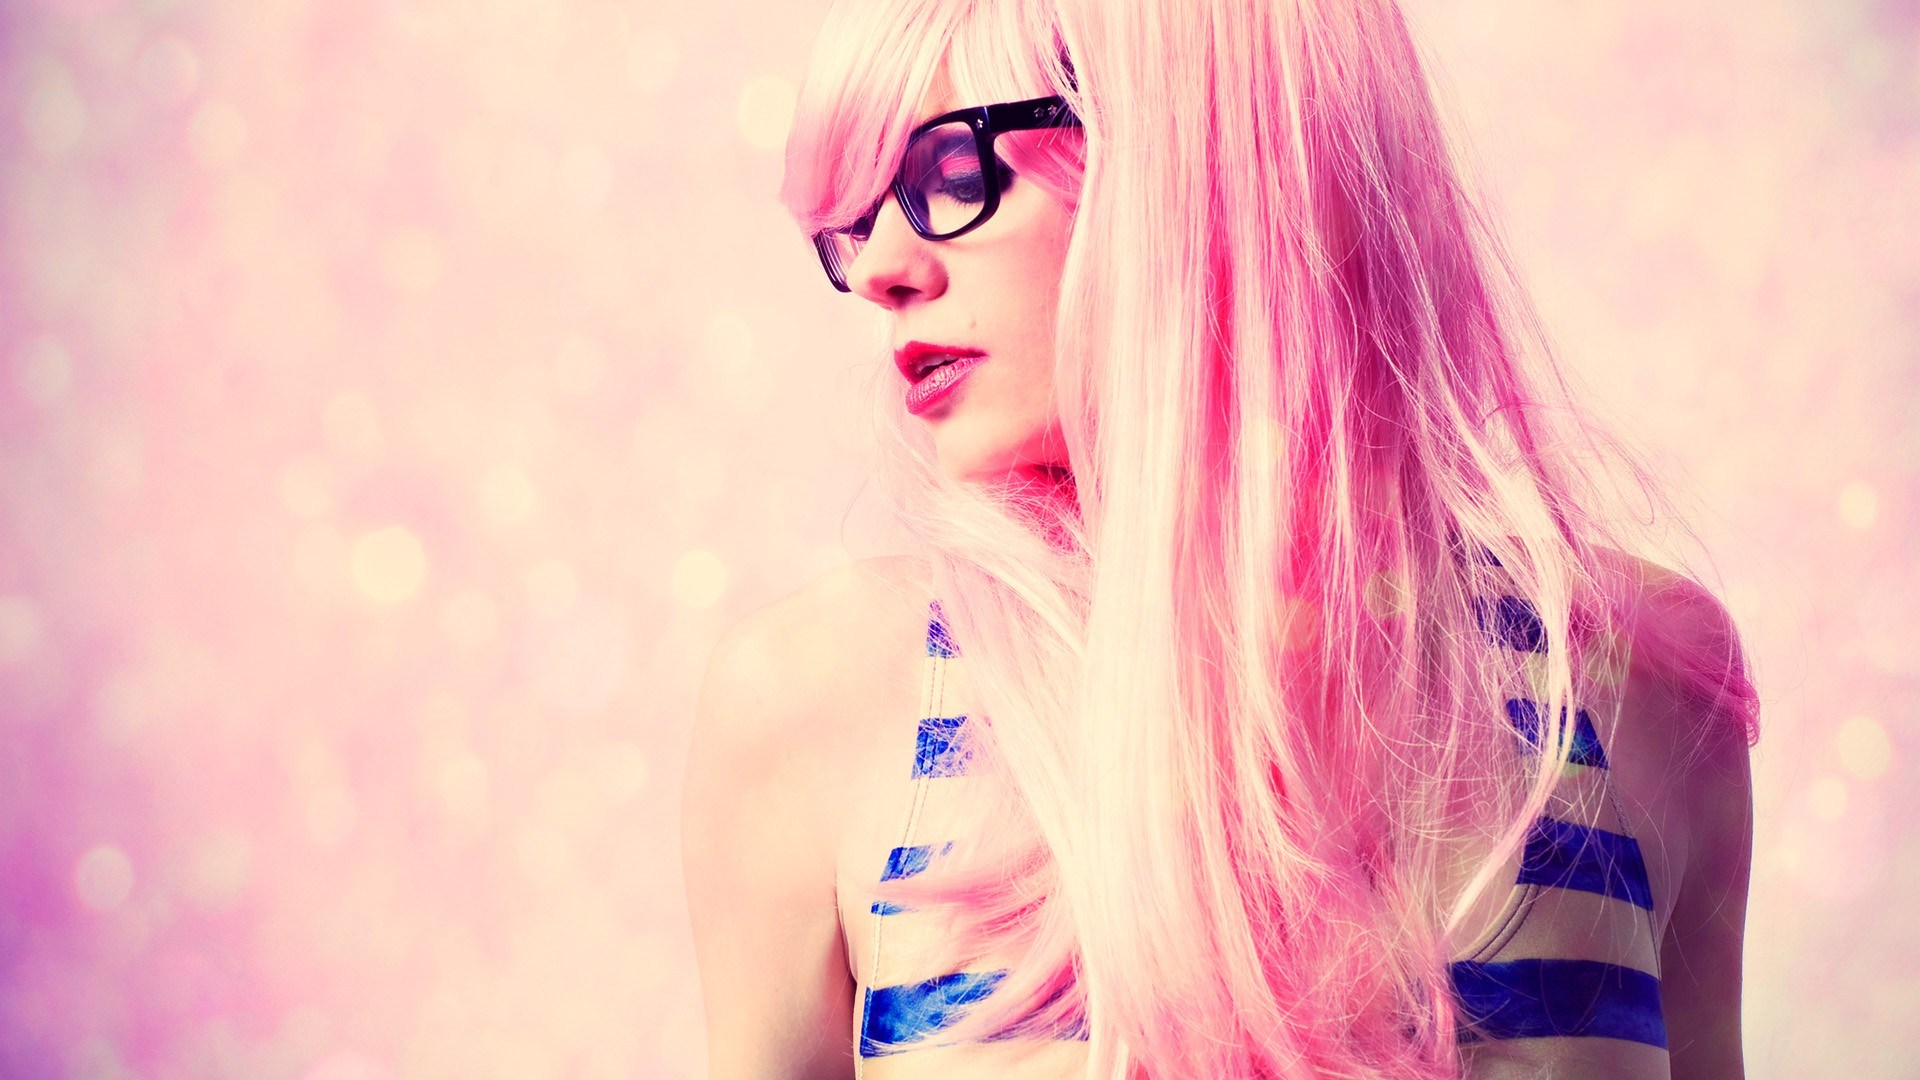 Blonde Girl Glasses Style Fashion HD Wallpaper